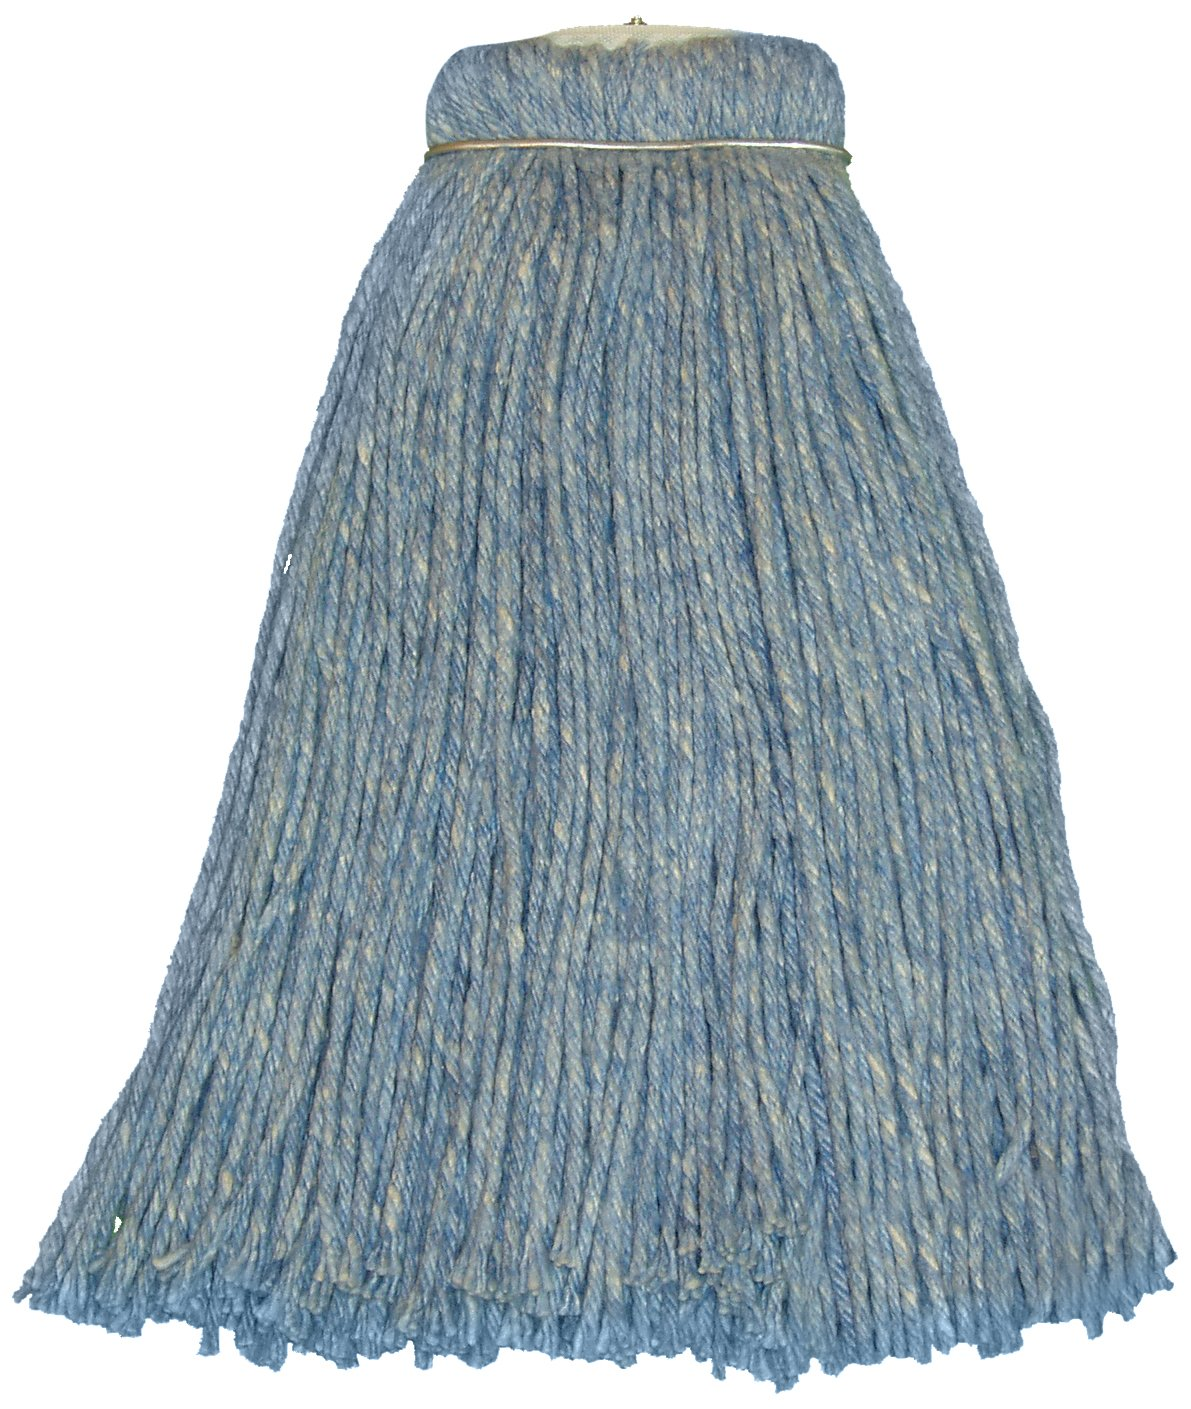 Zephyr 20916 Blue Blendup Blended Natural and Synthetic Fibers 16oz Screwflat Cut End Mop Head (Pack of 12)